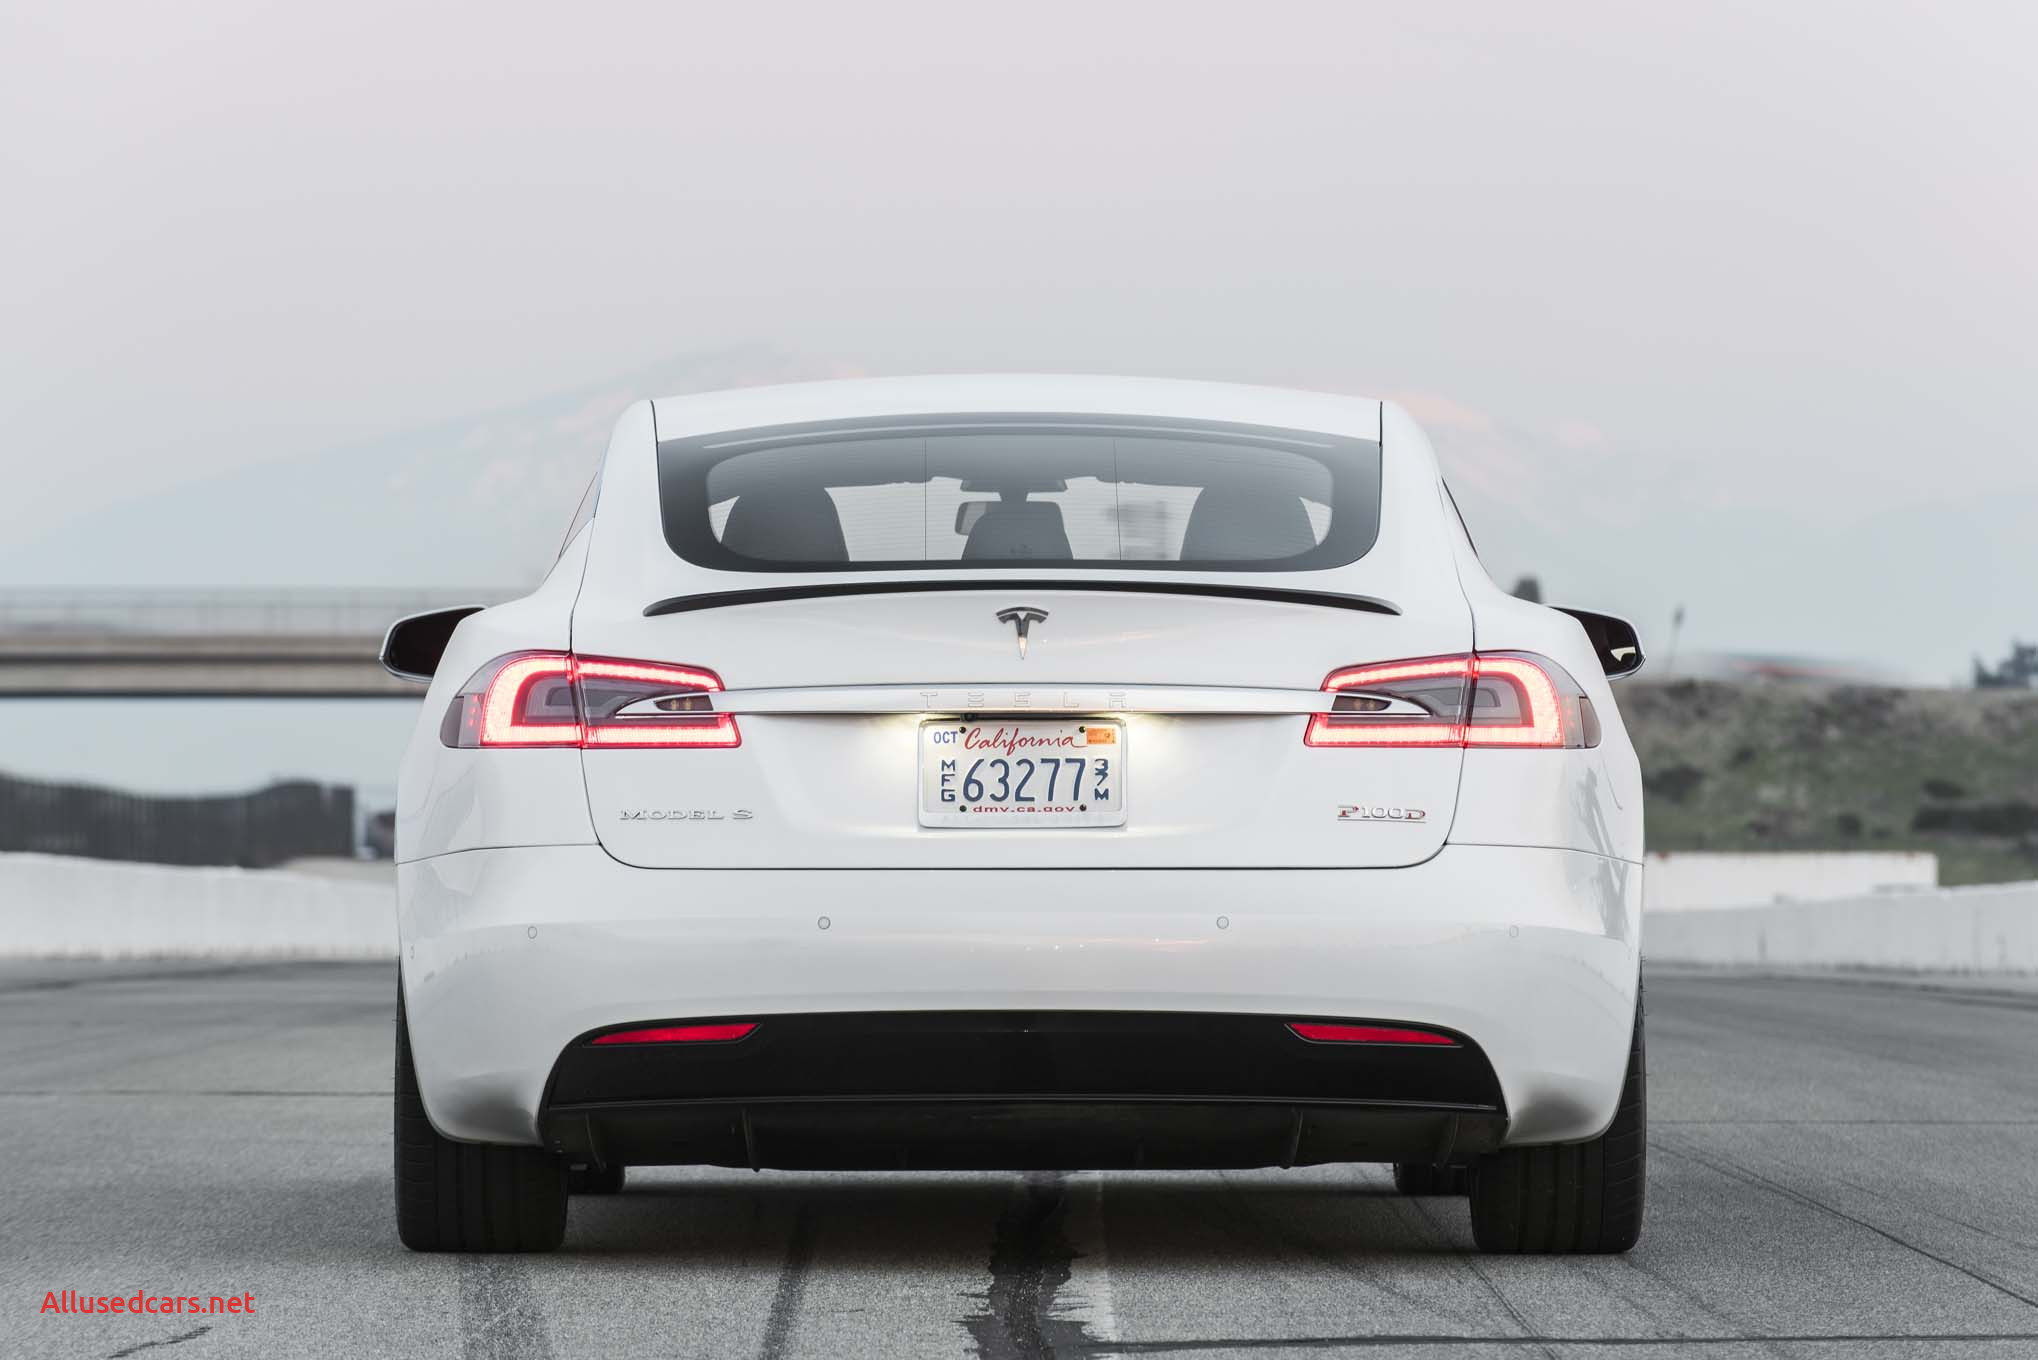 Buy Tesla Stock Awesome A Closer Look at the 2017 Tesla Model S P100d S Ludicrous